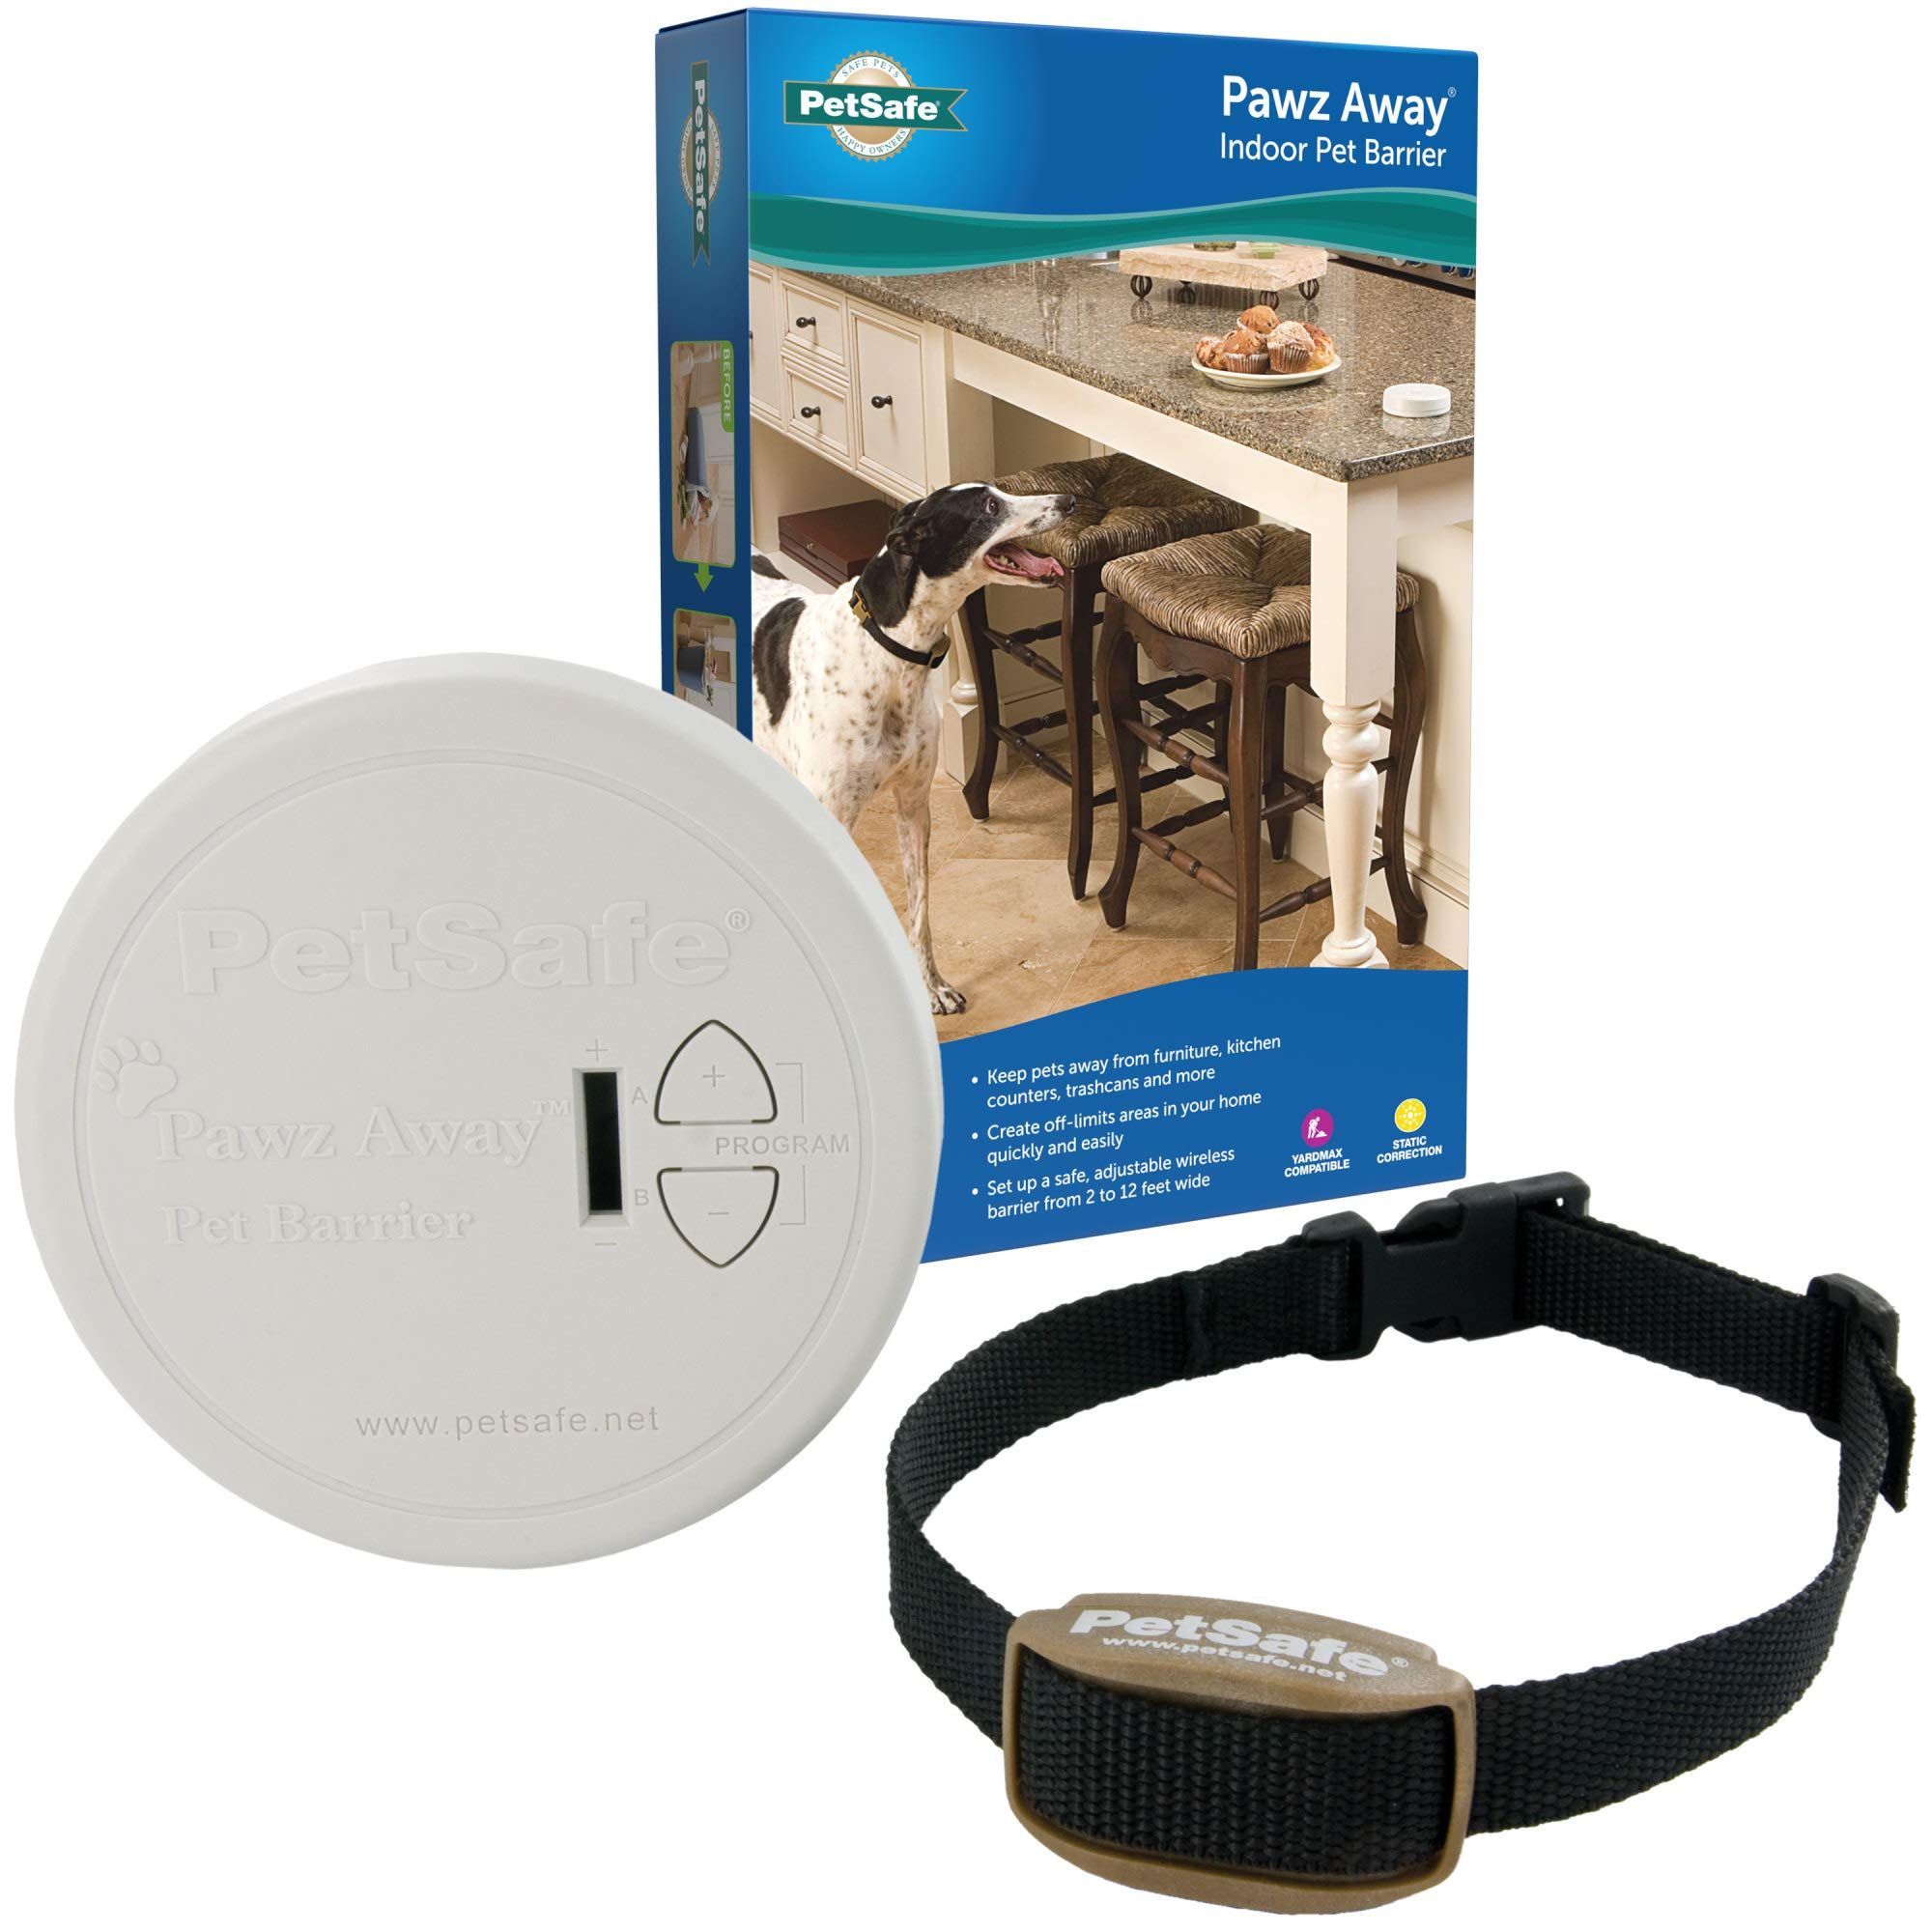 PetSafe Pawz Away Pet Barriers with Adjustable Range, Pet Proofing for Cats and Dogs, Static Stimulation – Wireless Pet Gate Keeps Areas Off Limits, Battery-Operated